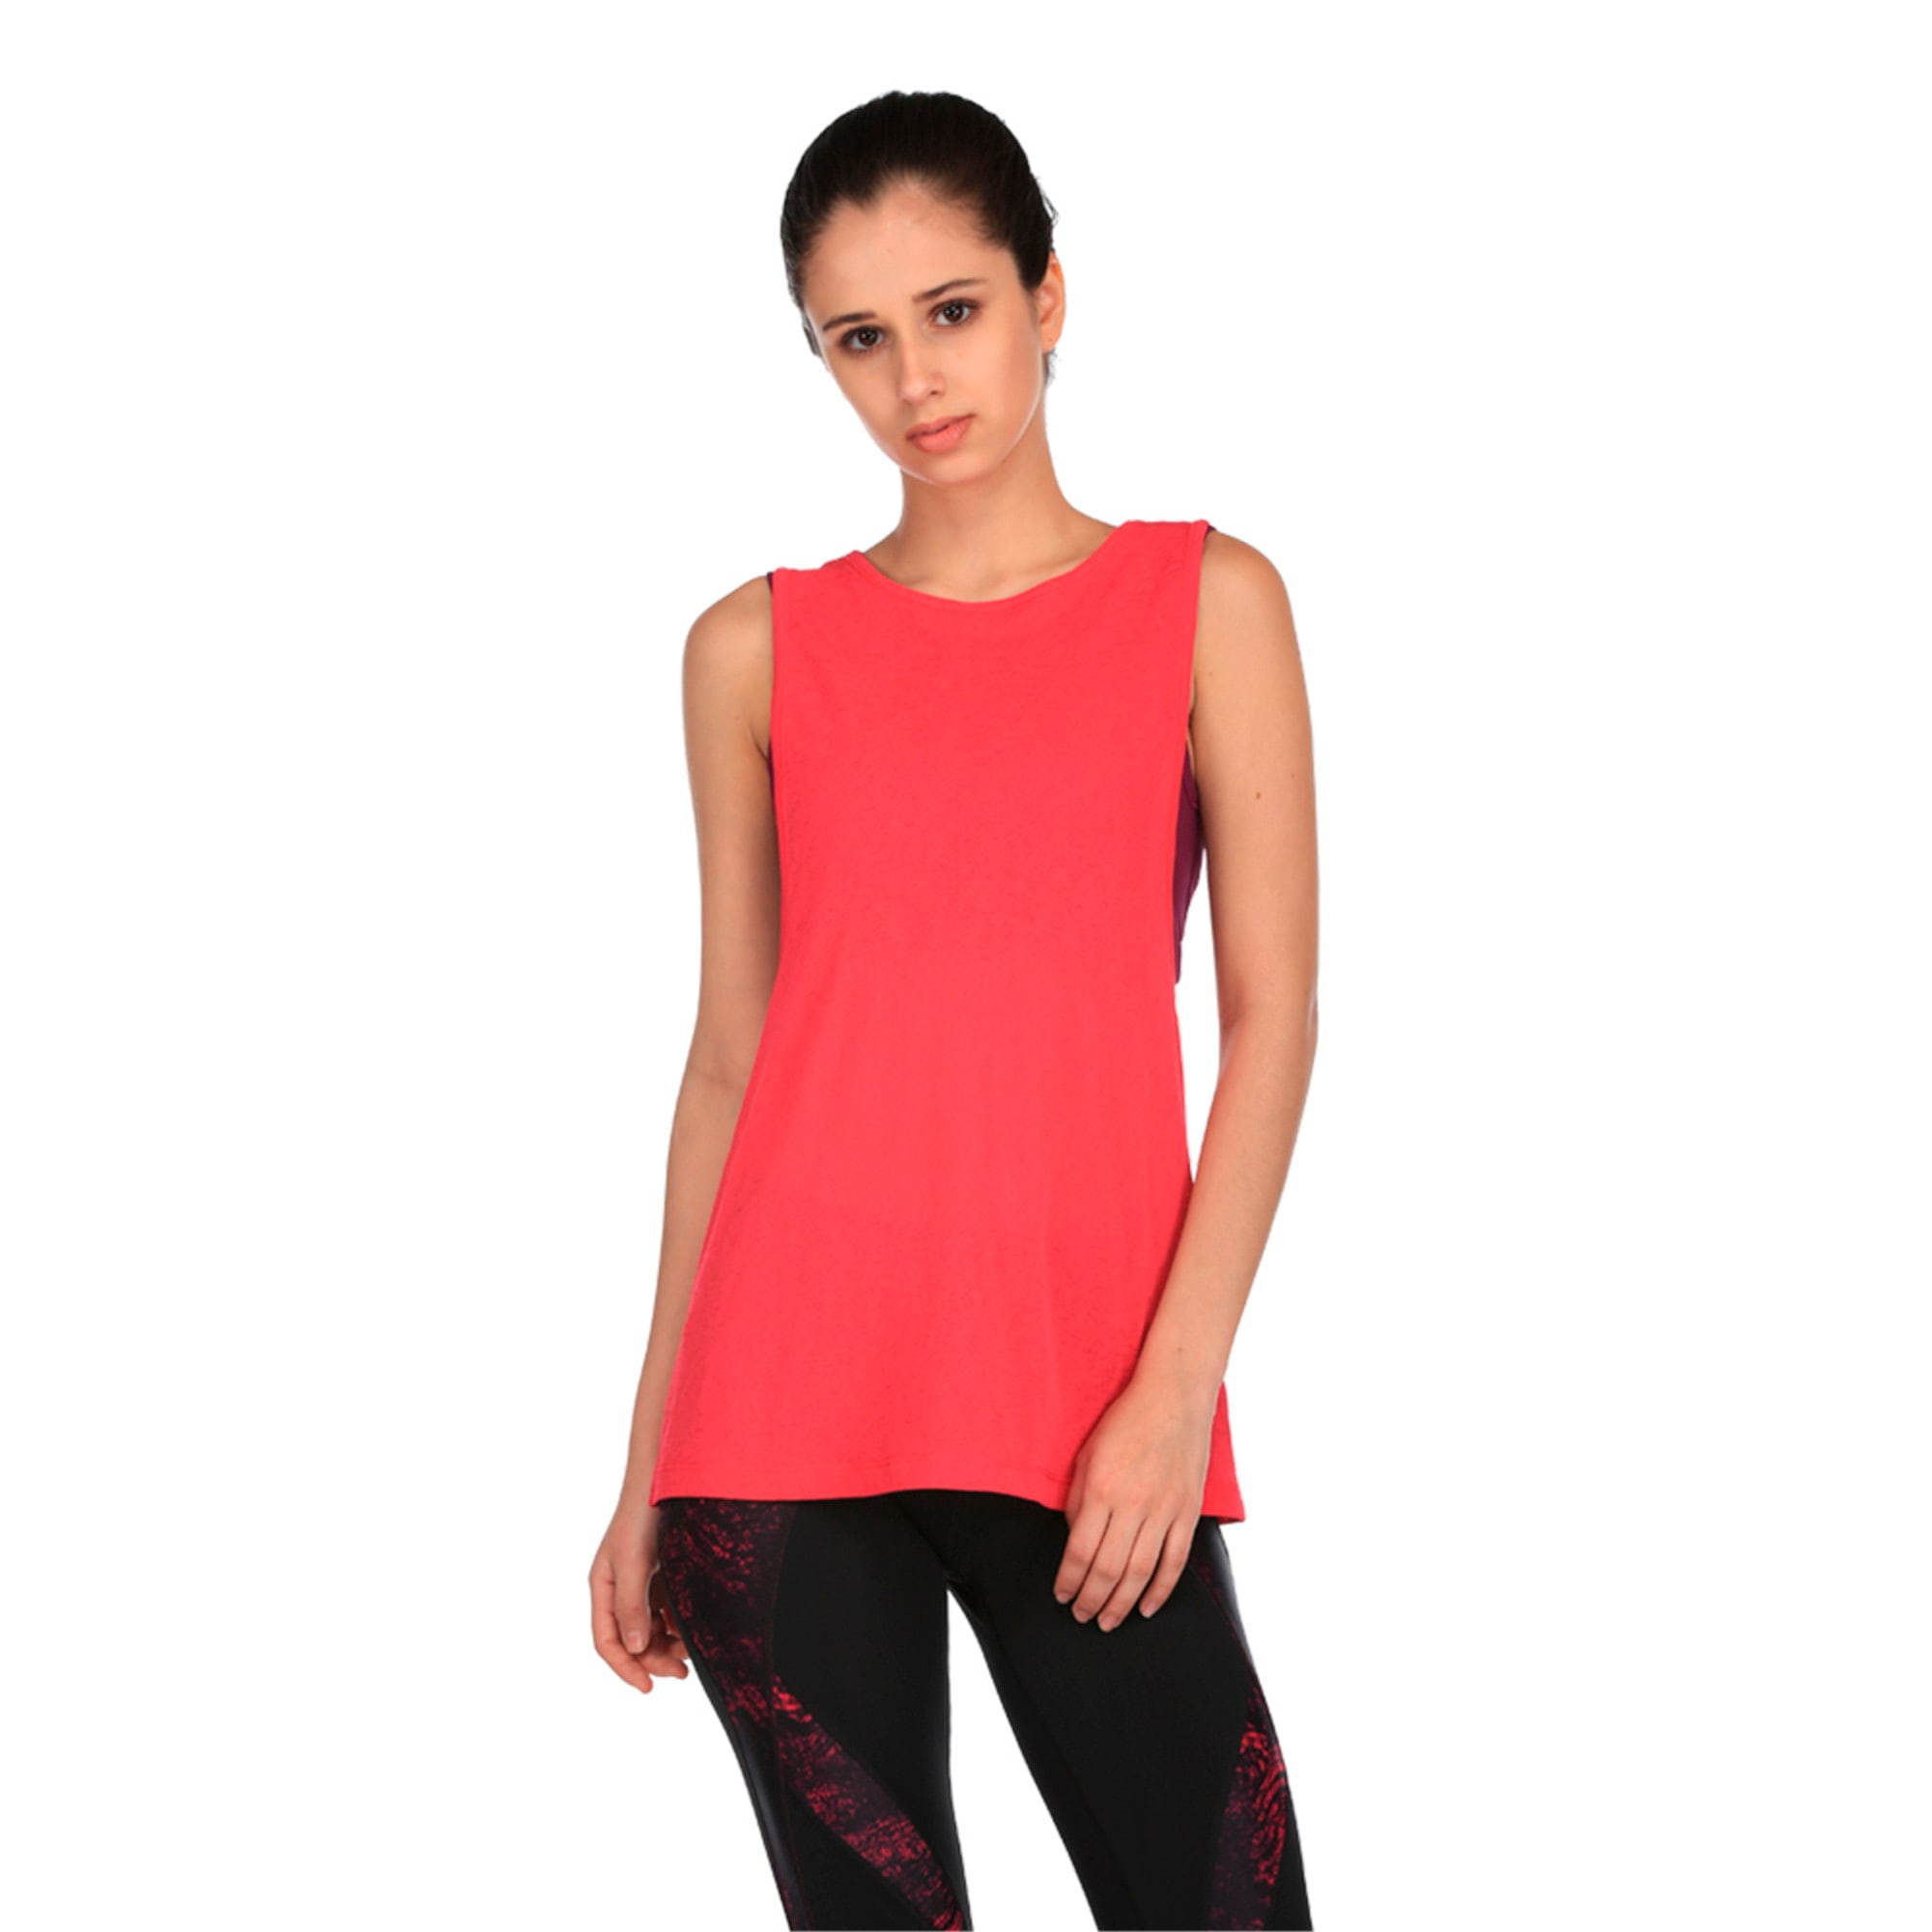 Thumbnail 1 of Active Training Women's Layer Tank Top, Love Potion-Oxidized prt, medium-IND